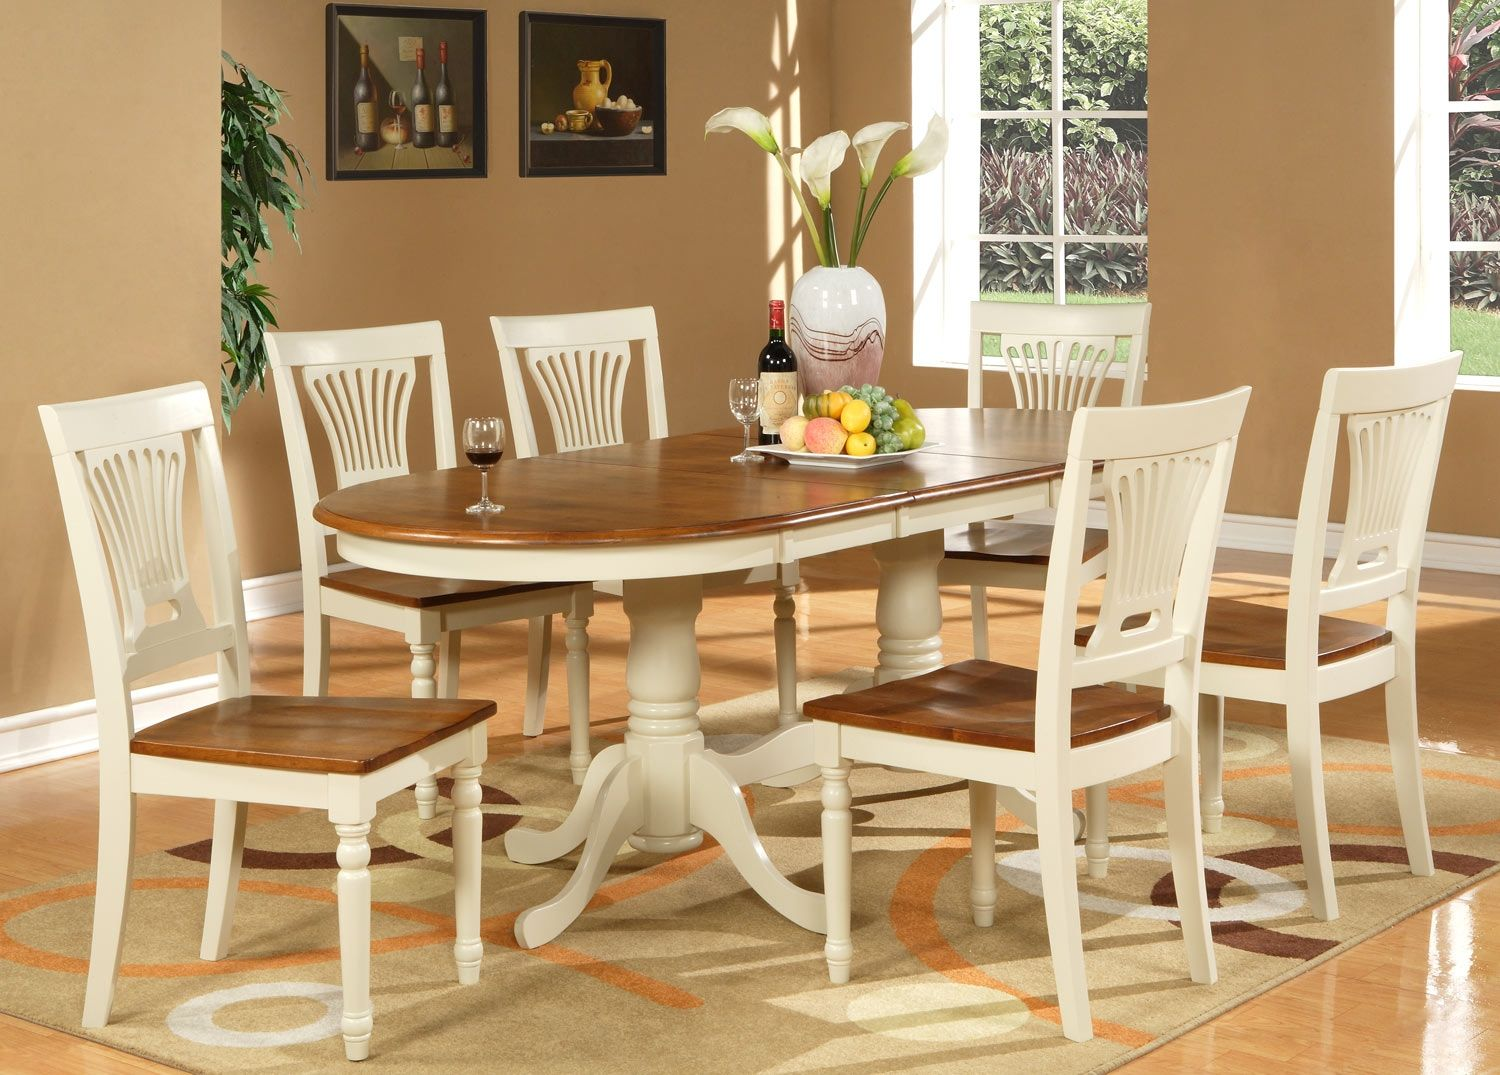 Large Oval Kitchen Table Sets lachpage Pinterest